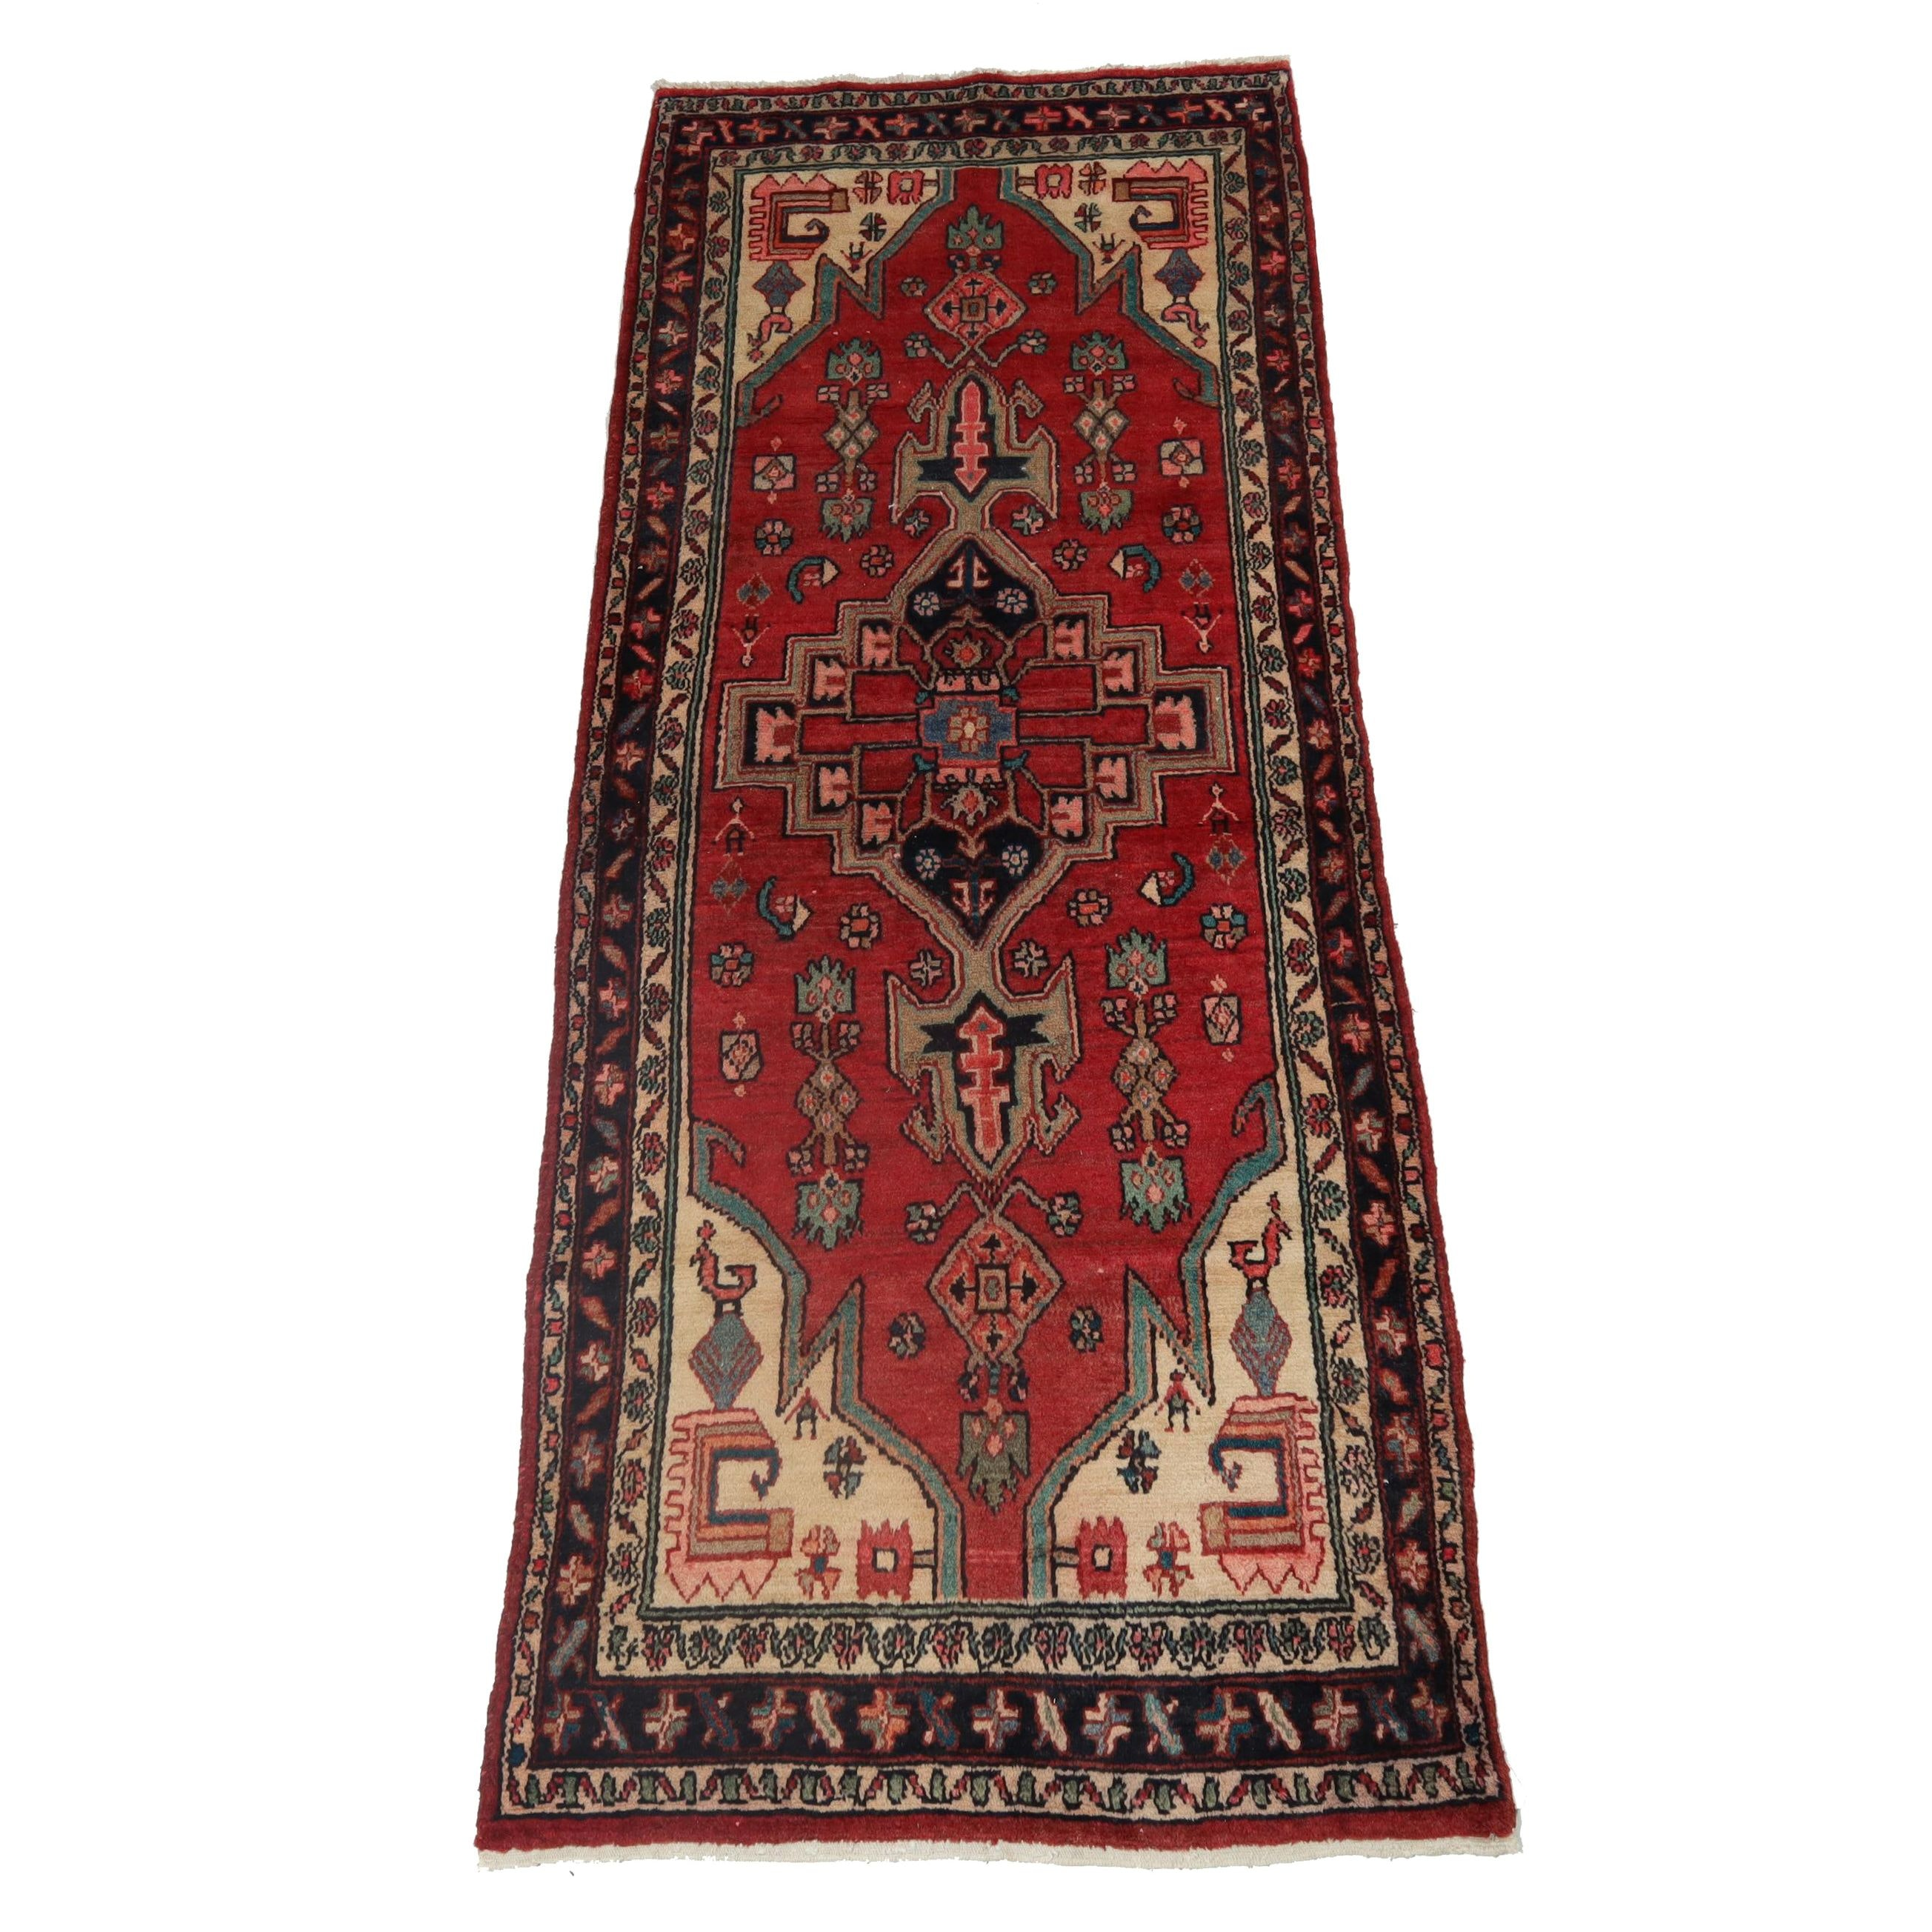 3.5' x 8.11' Hand-Knotted Persian Malayer Pictorial Carpet Runner, Circa 1950